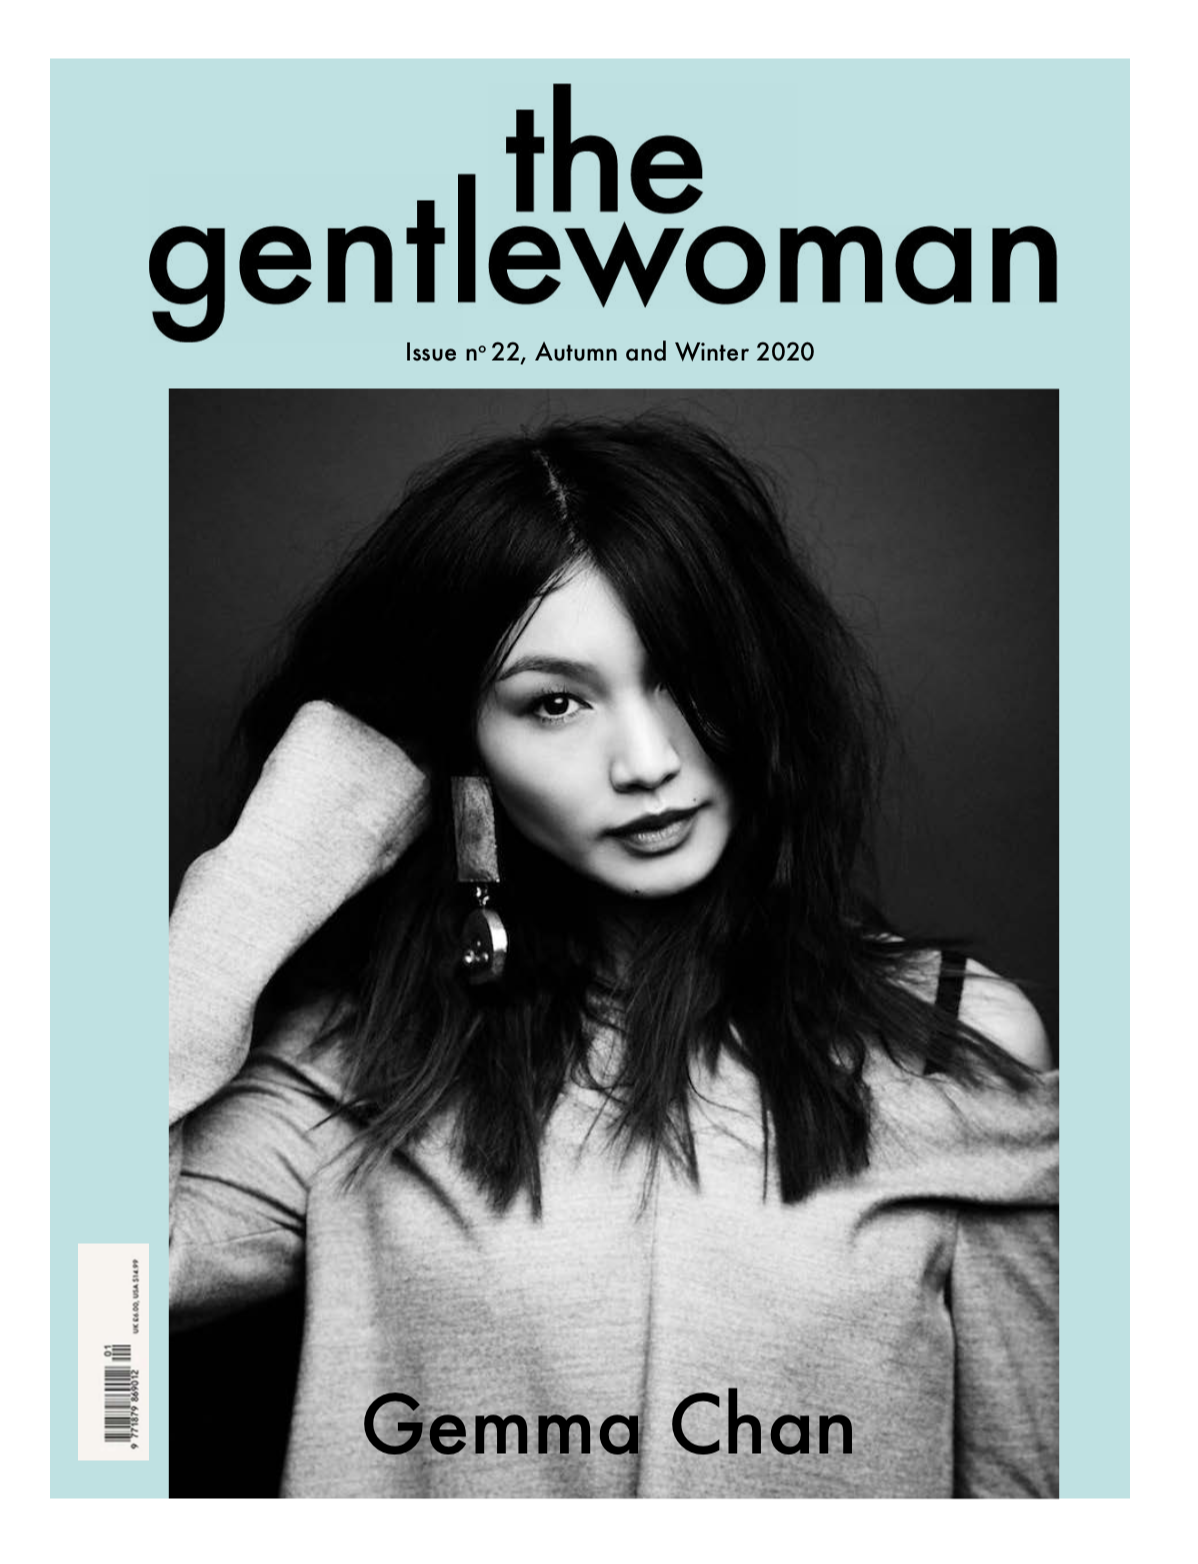 the Gentlewoman Editorial Proposal